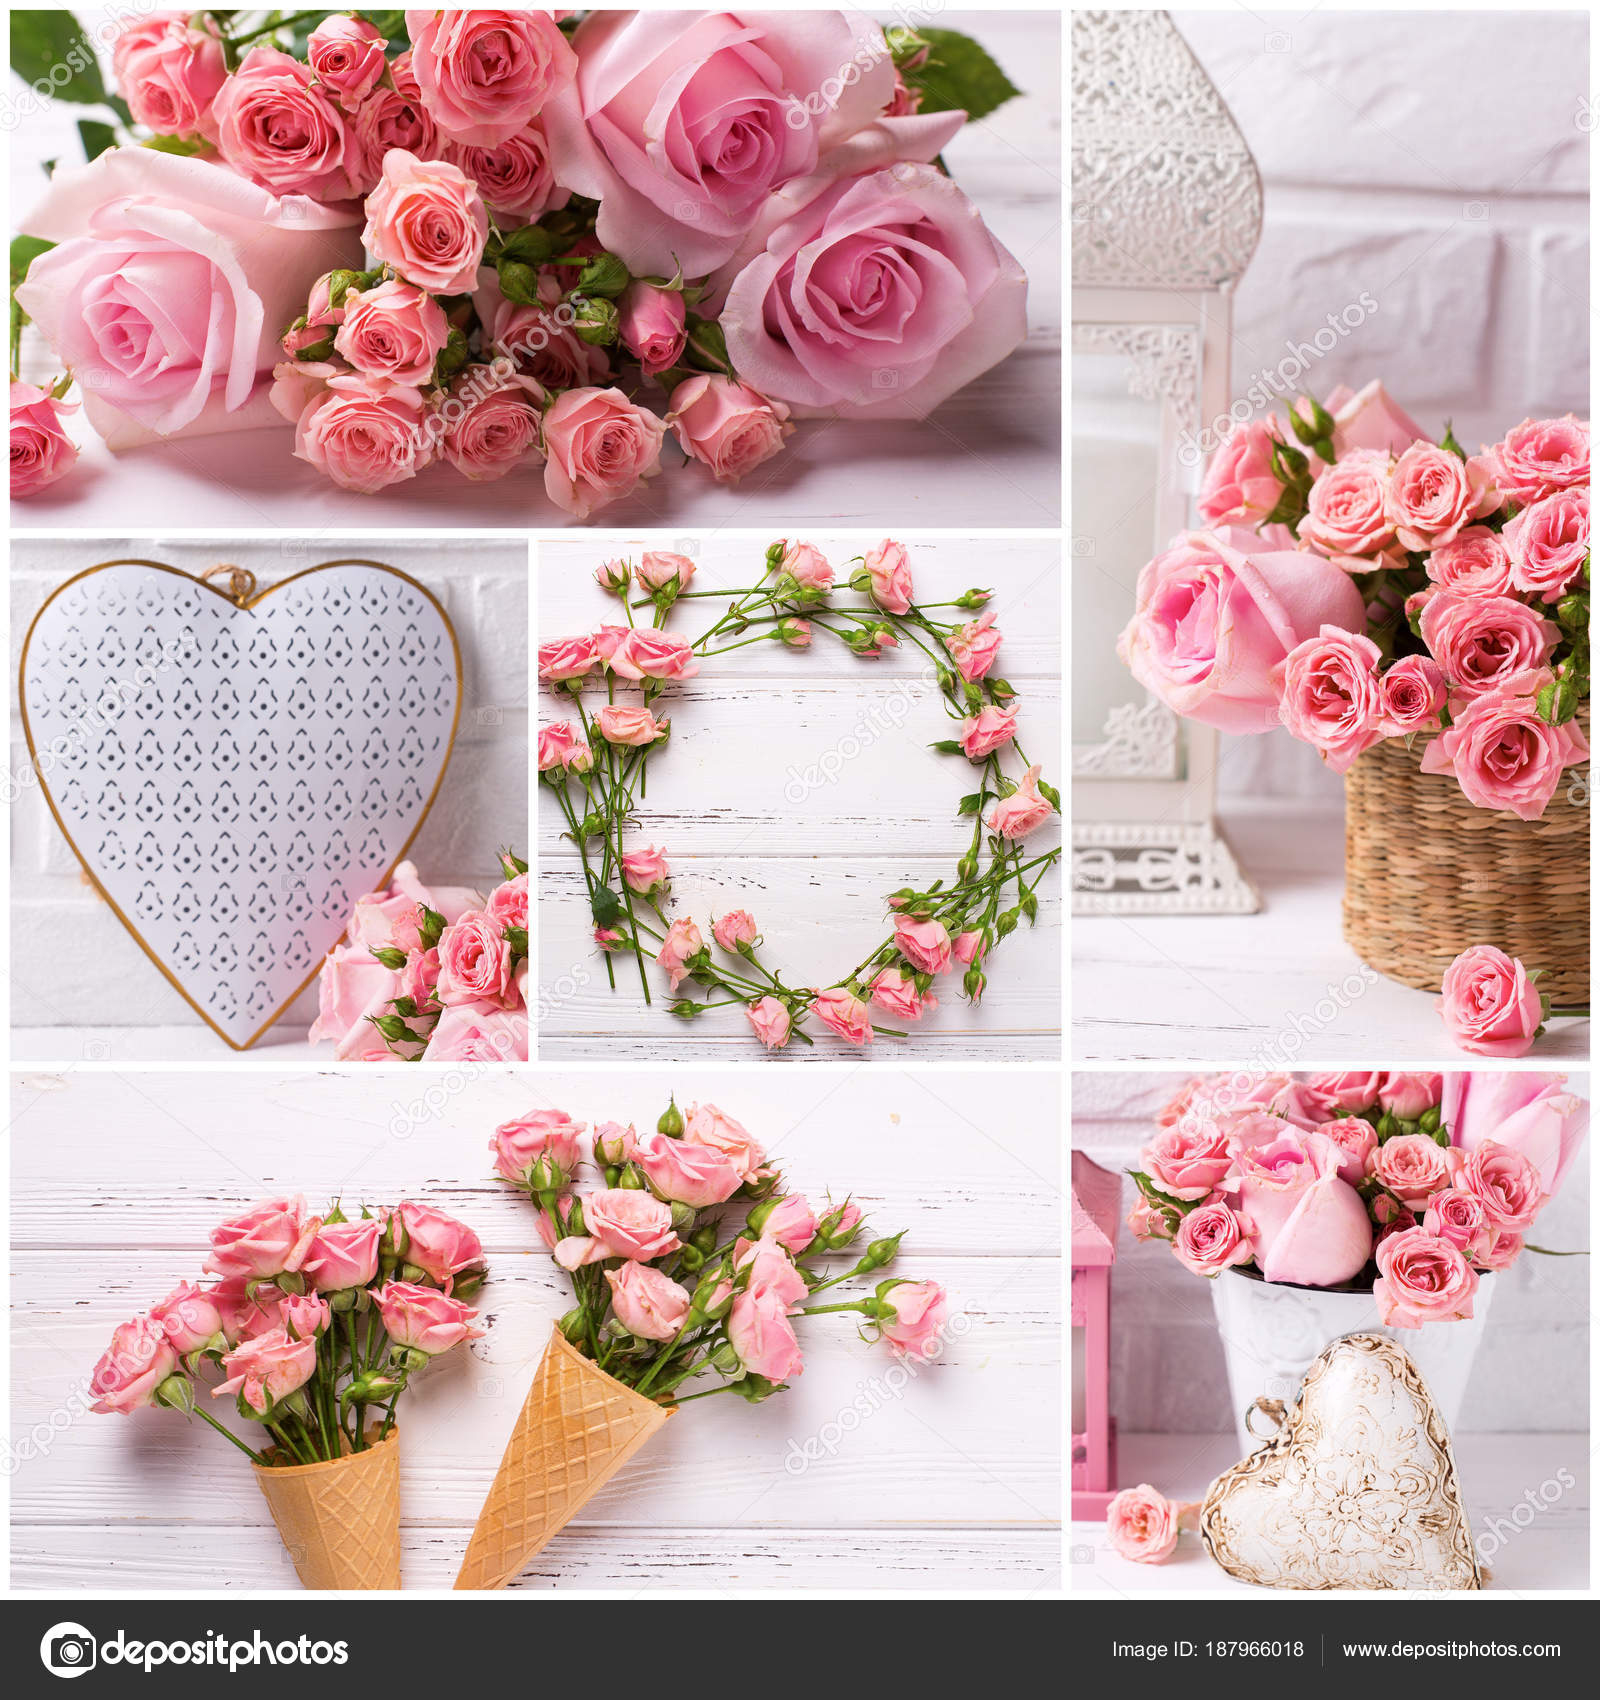 Collage Photos Tender Pink Roses Flowers Decorative Hearts Light